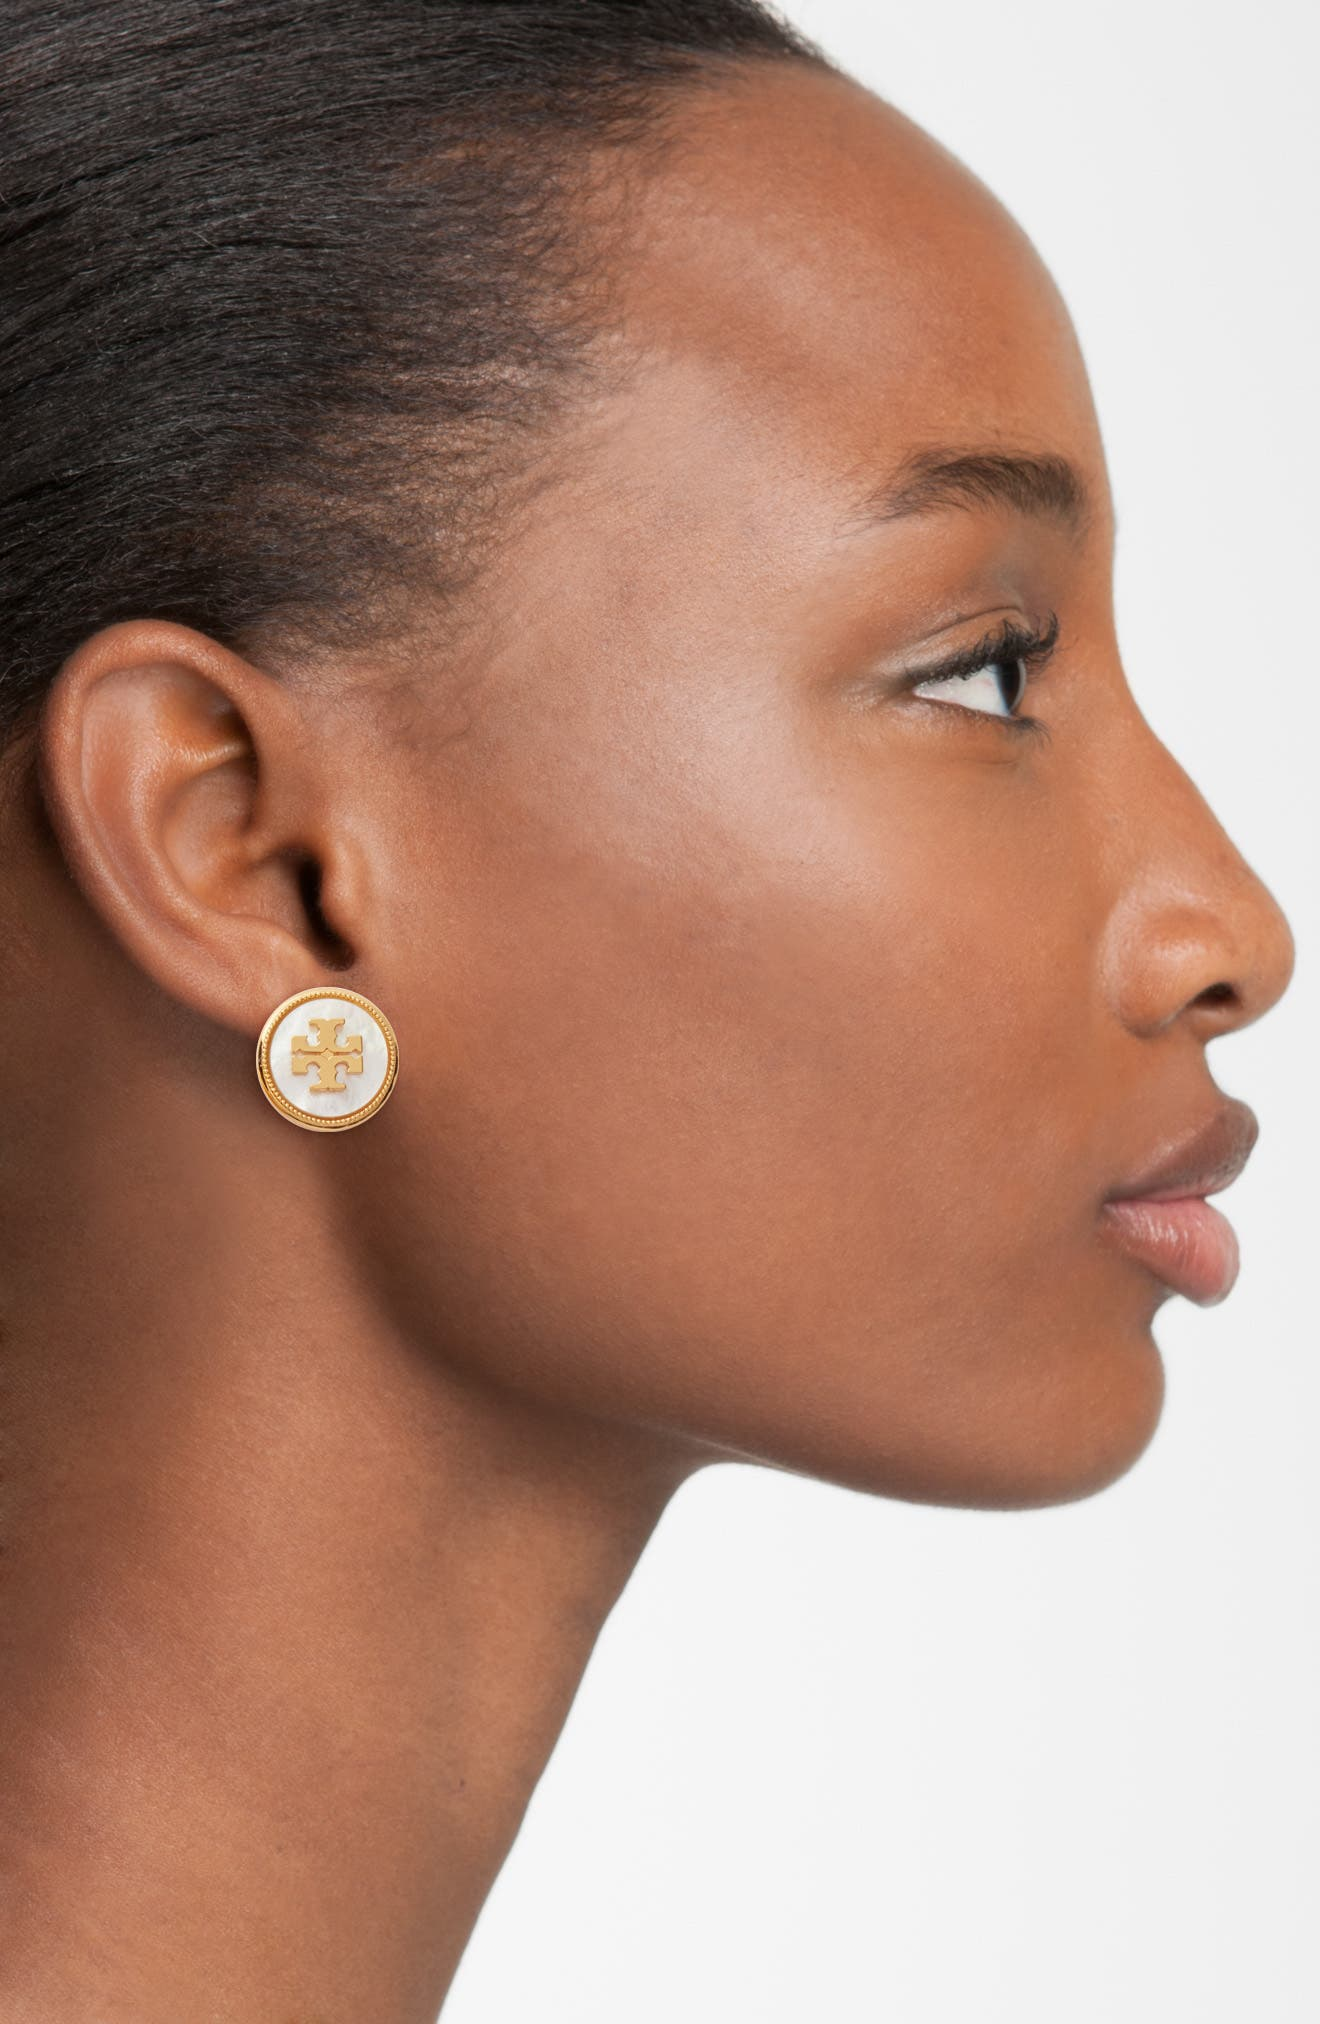 TORY BURCH, Semiprecious Stone Stud Earrings, Alternate thumbnail 2, color, MOTHER OF PEARL / VINTAGE GOLD